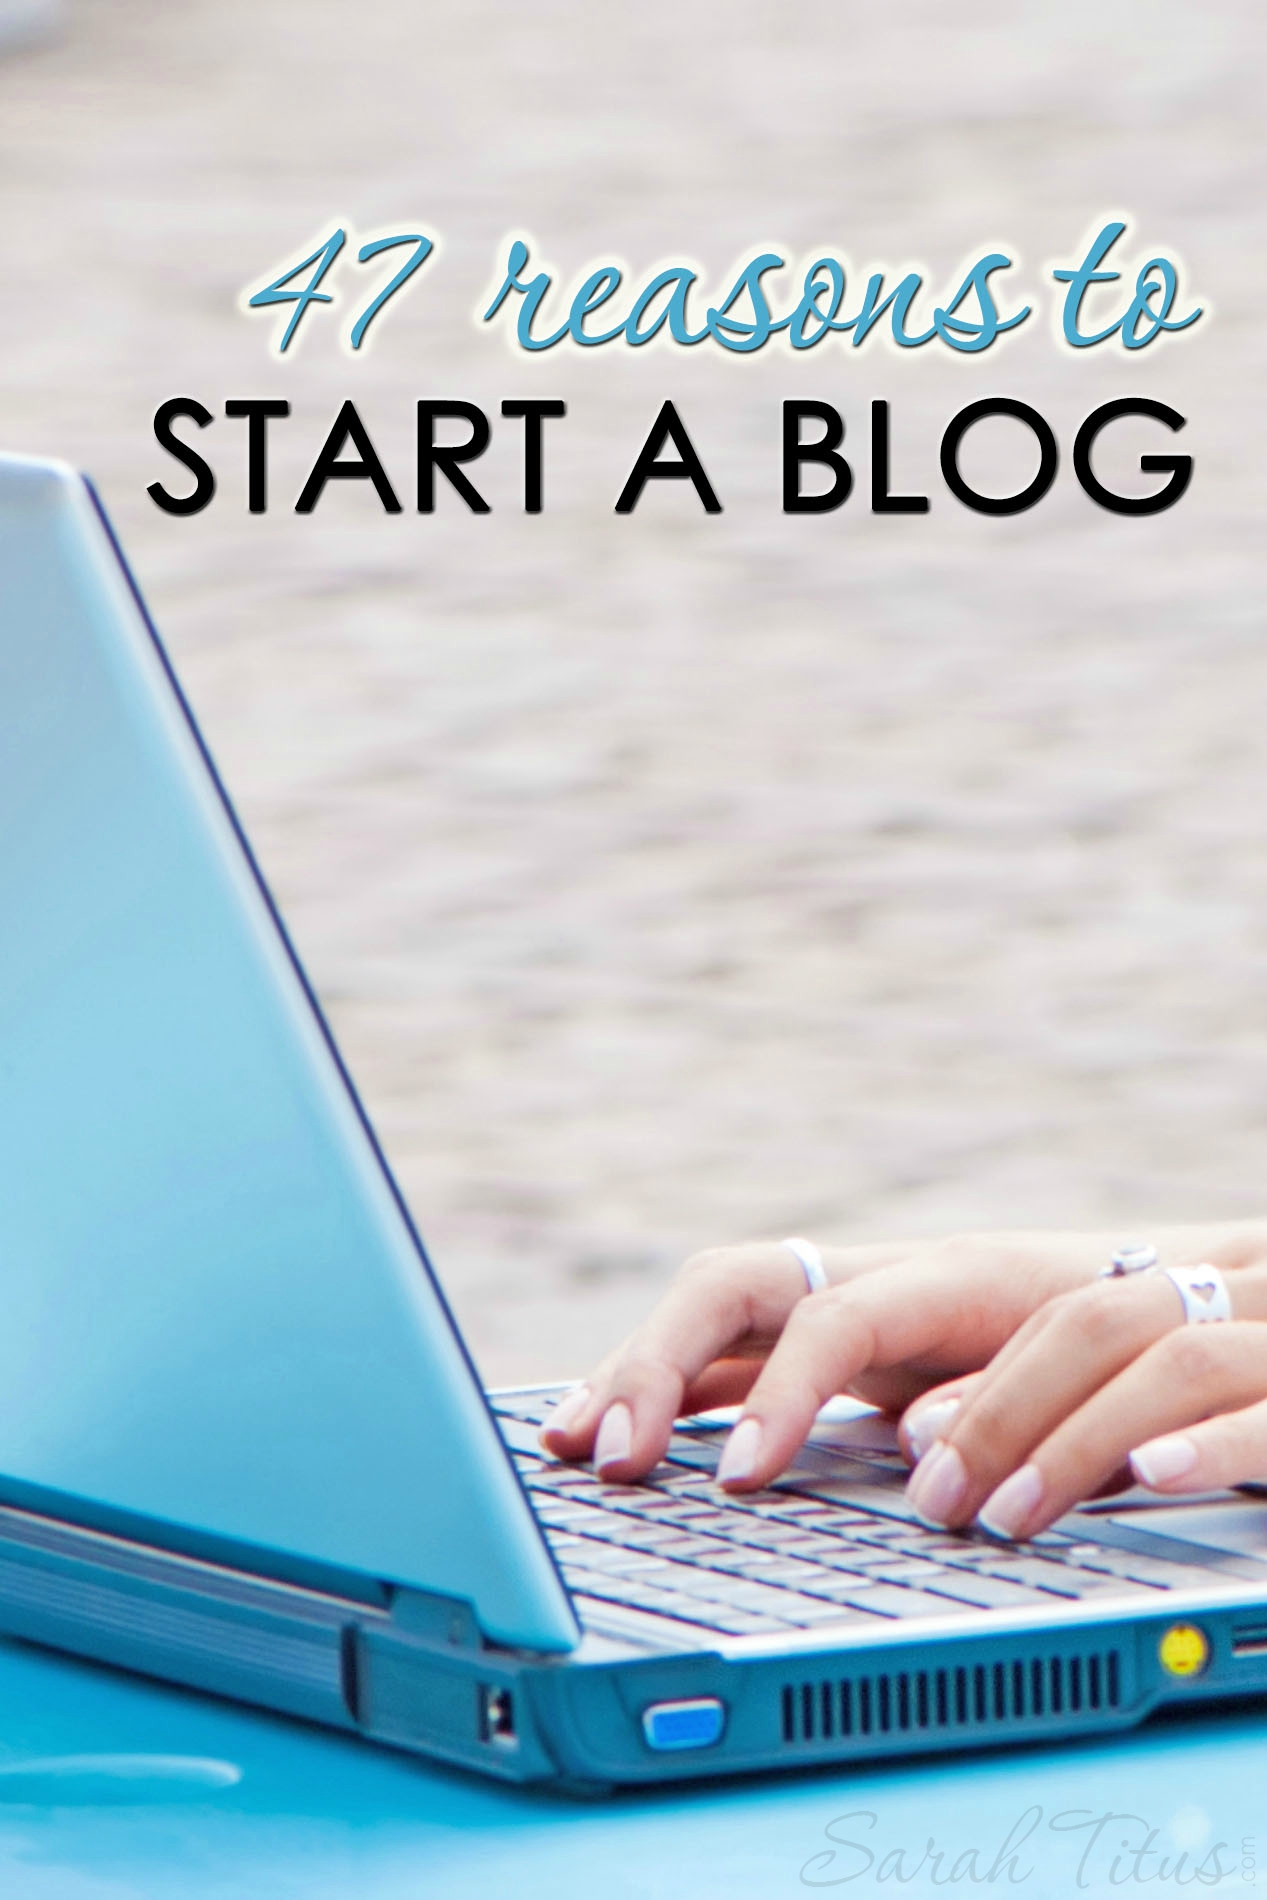 Within my first year of blogging, I hit nearly a million in traffic and $10,000/month income. Being a single stay-at-home-mom that blogs has truly changed my life and it can change yours too! Here are 47 reasons to start a blog.